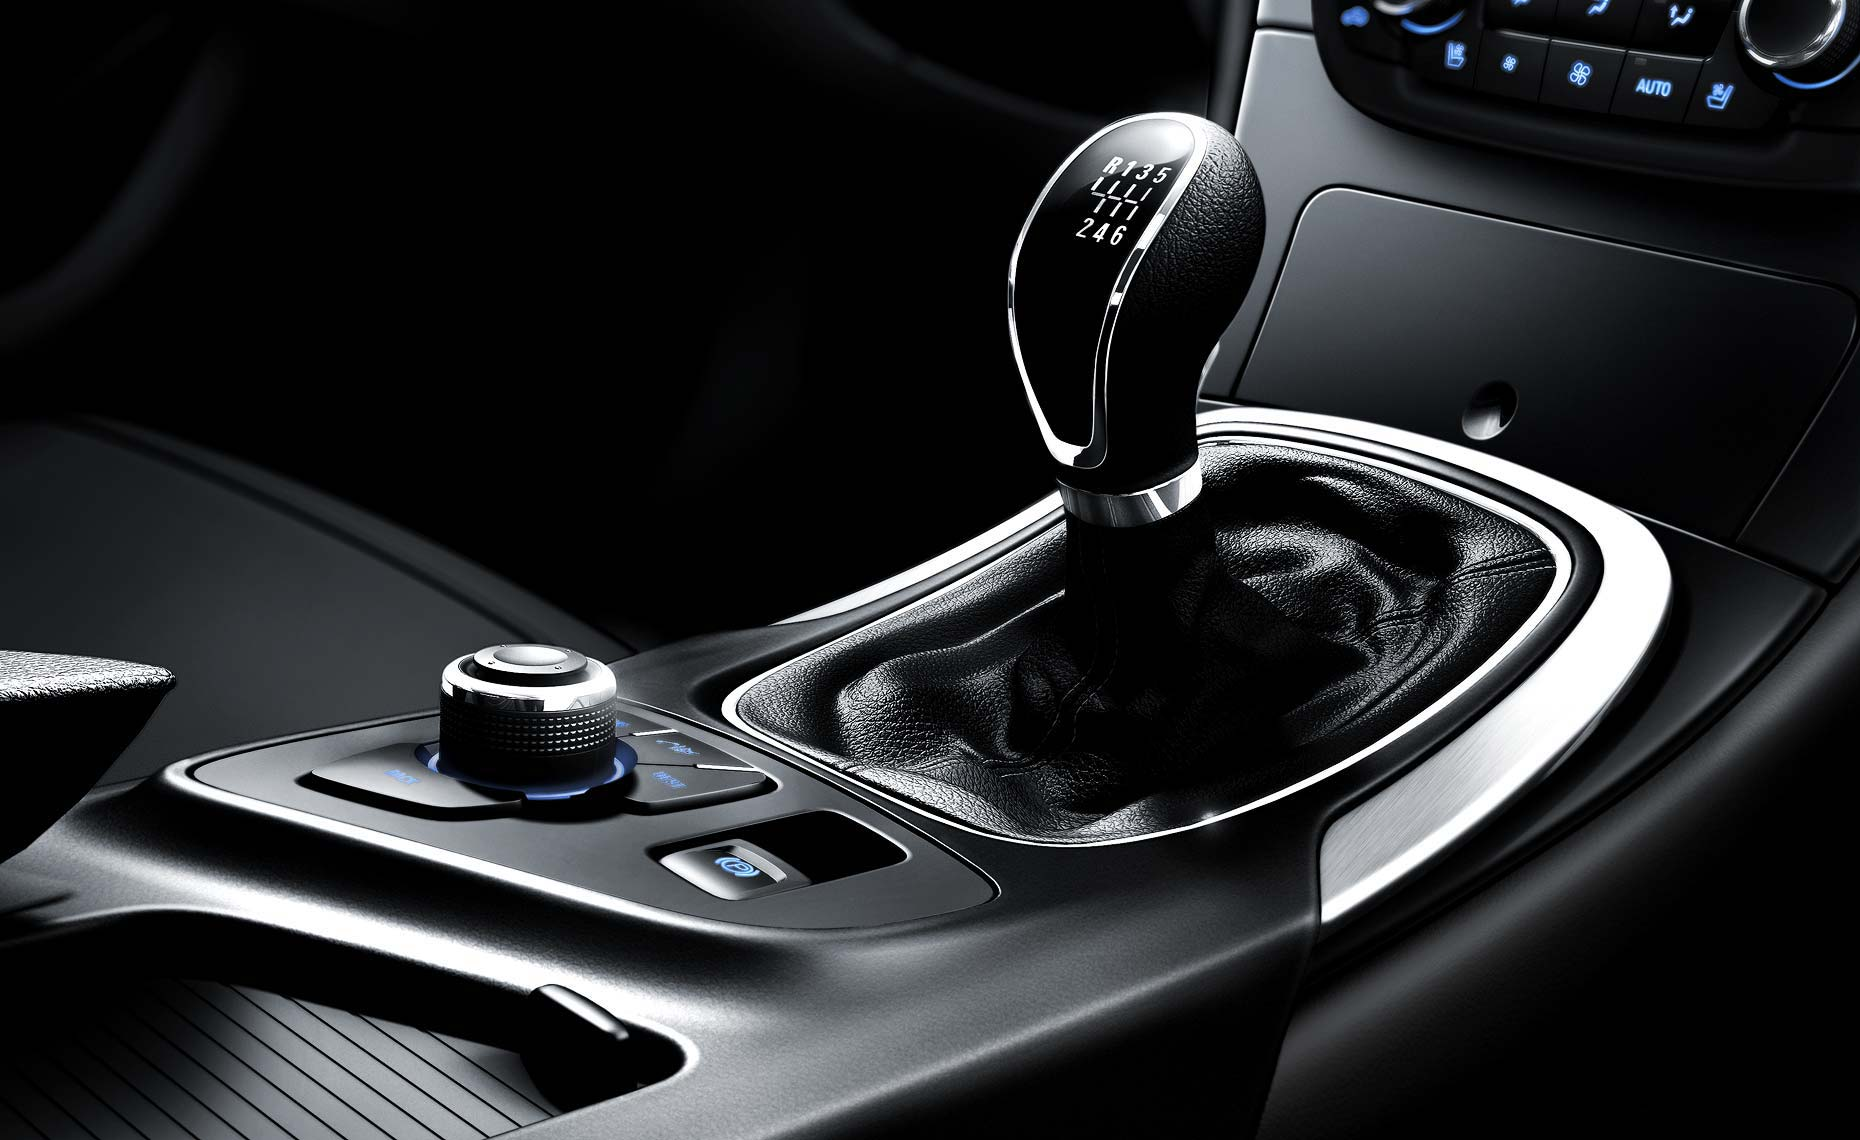 2011 buick regal-shifter detail.jpg